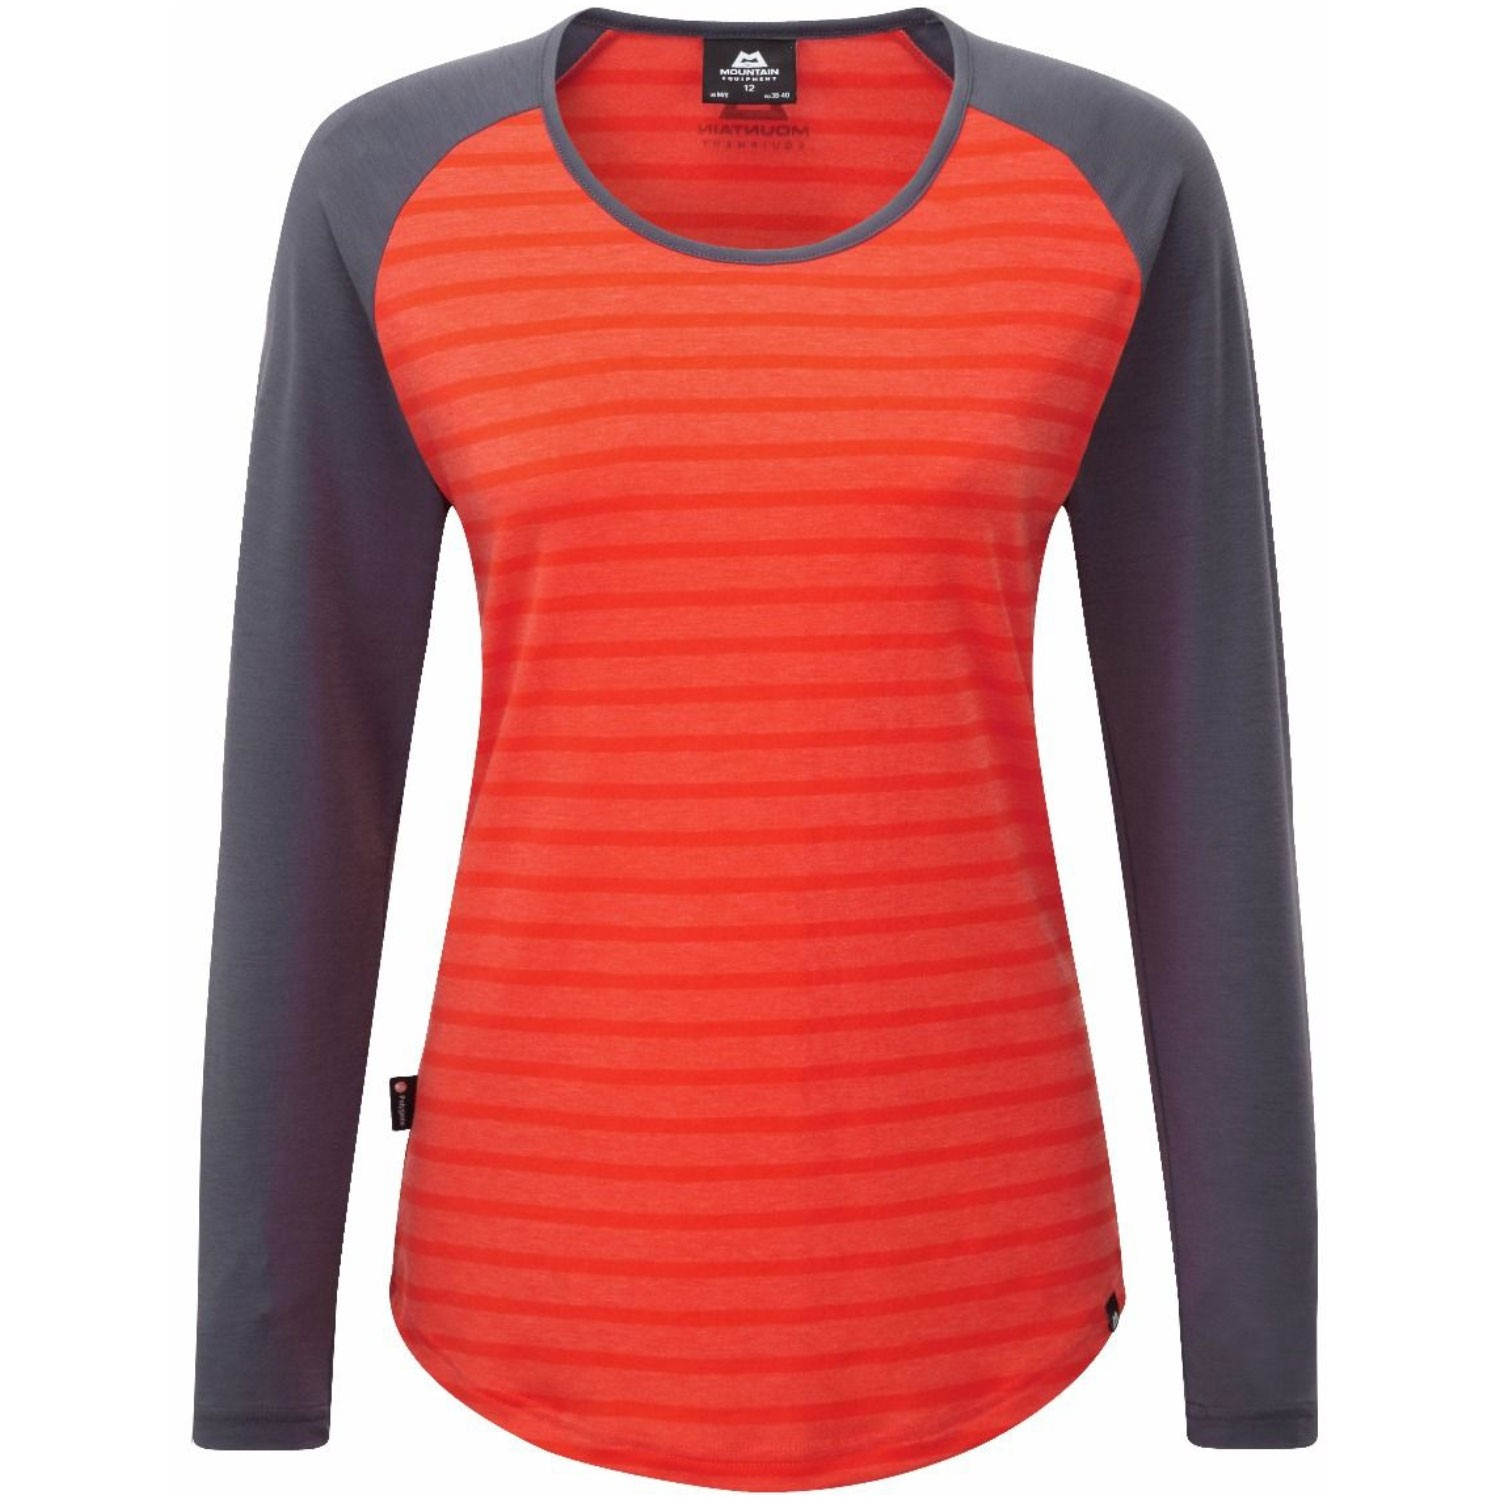 Mountain Equipment Women's Redline LS Tee - Cardinal Orange/Welsh Slate